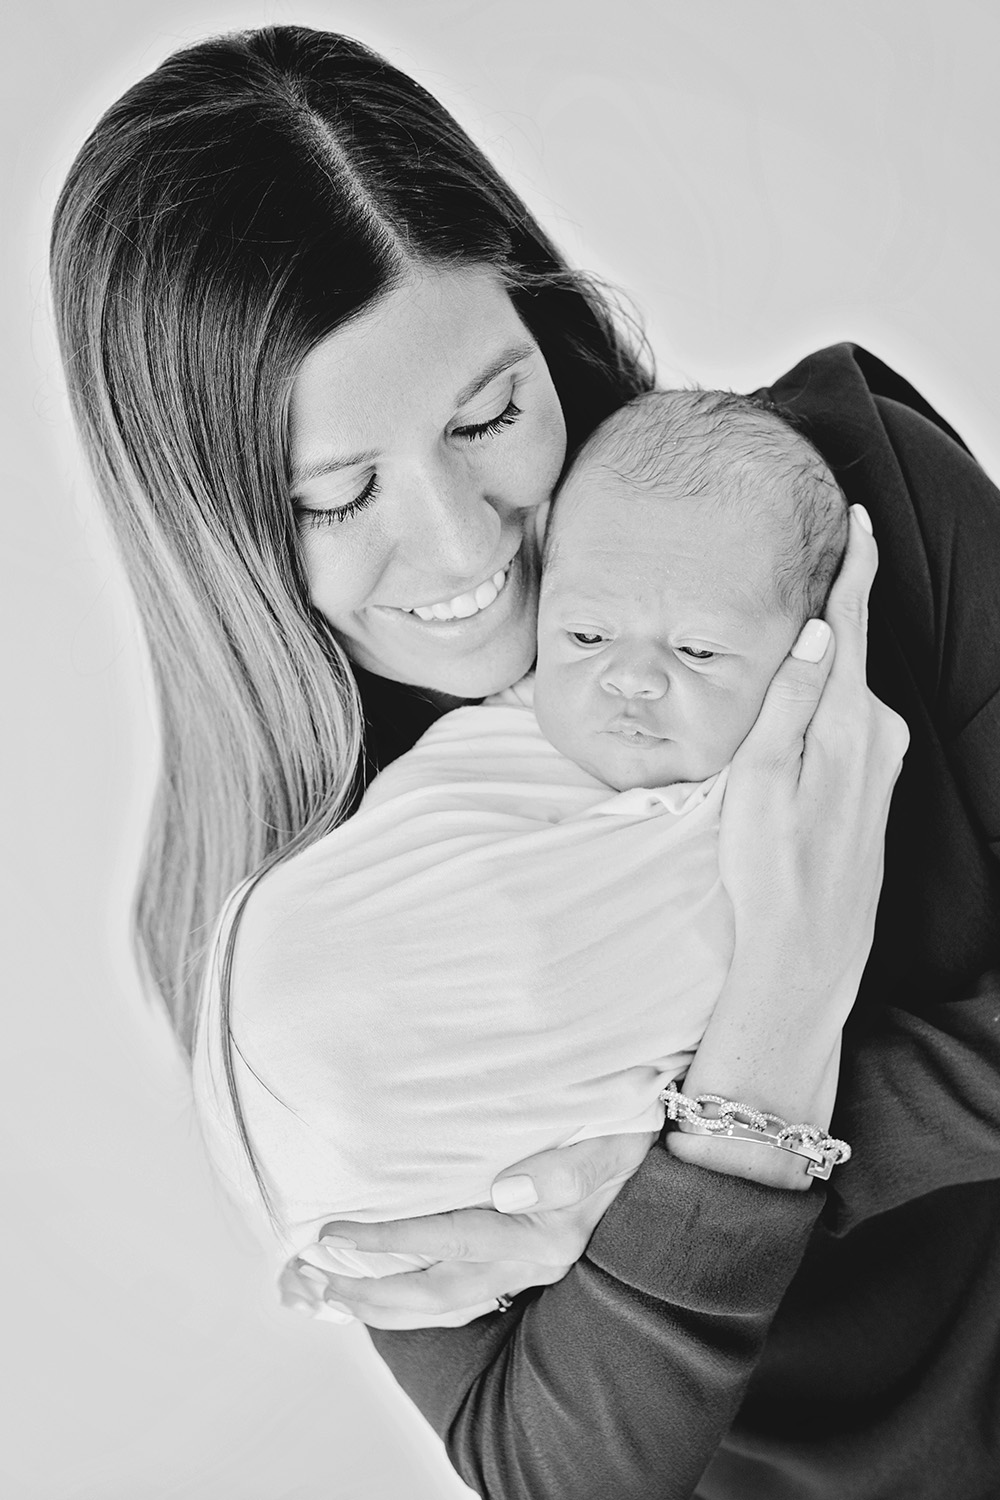 biloxi-newborn-black-white.jpg